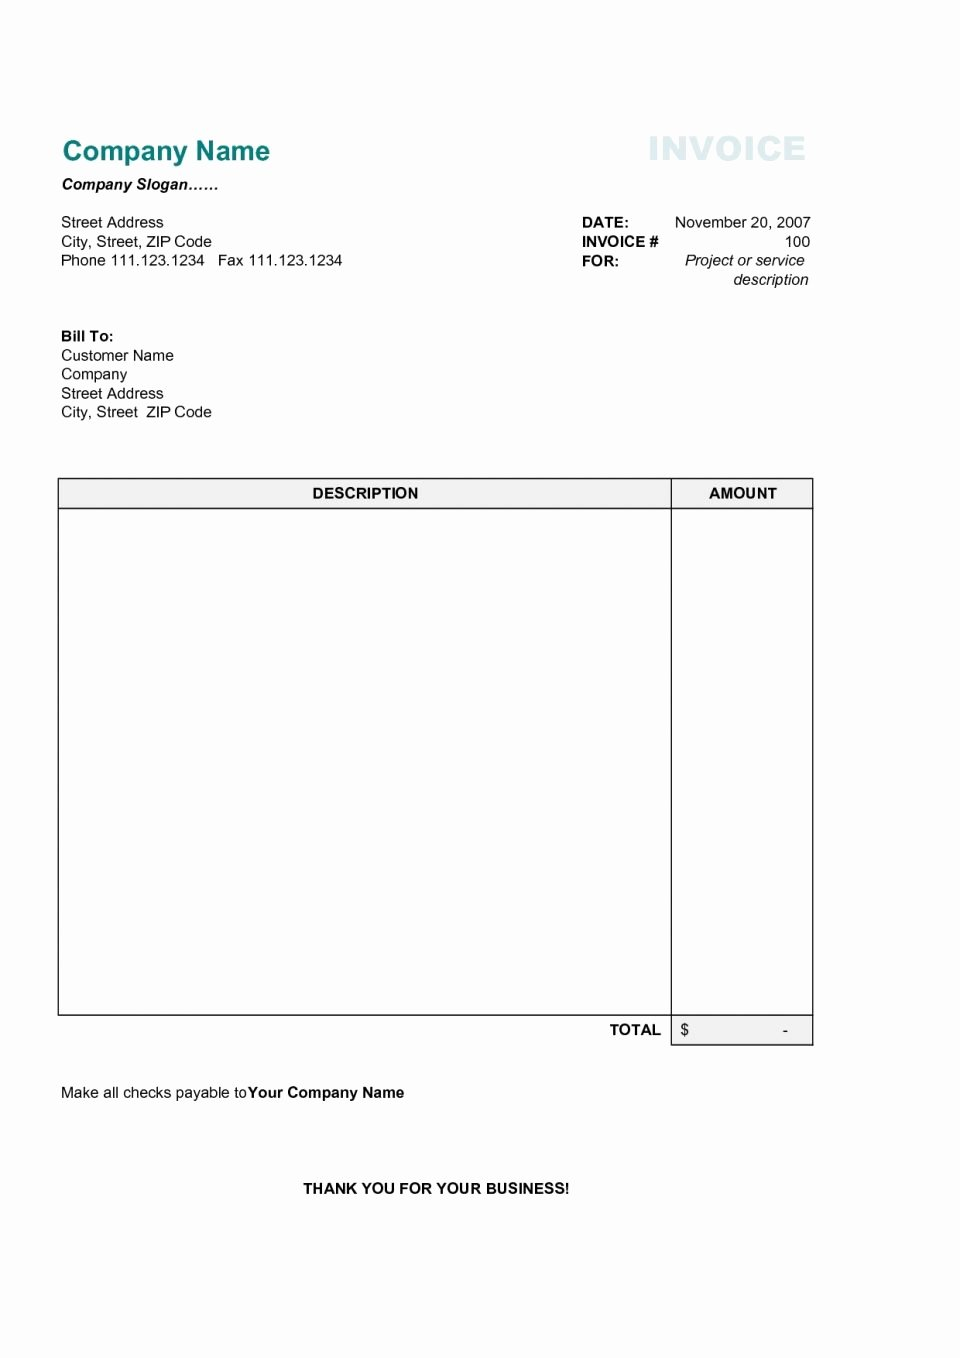 Independent Contractor Invoice Template Pdf New Independent Contractor Invoice Template Excel Best S